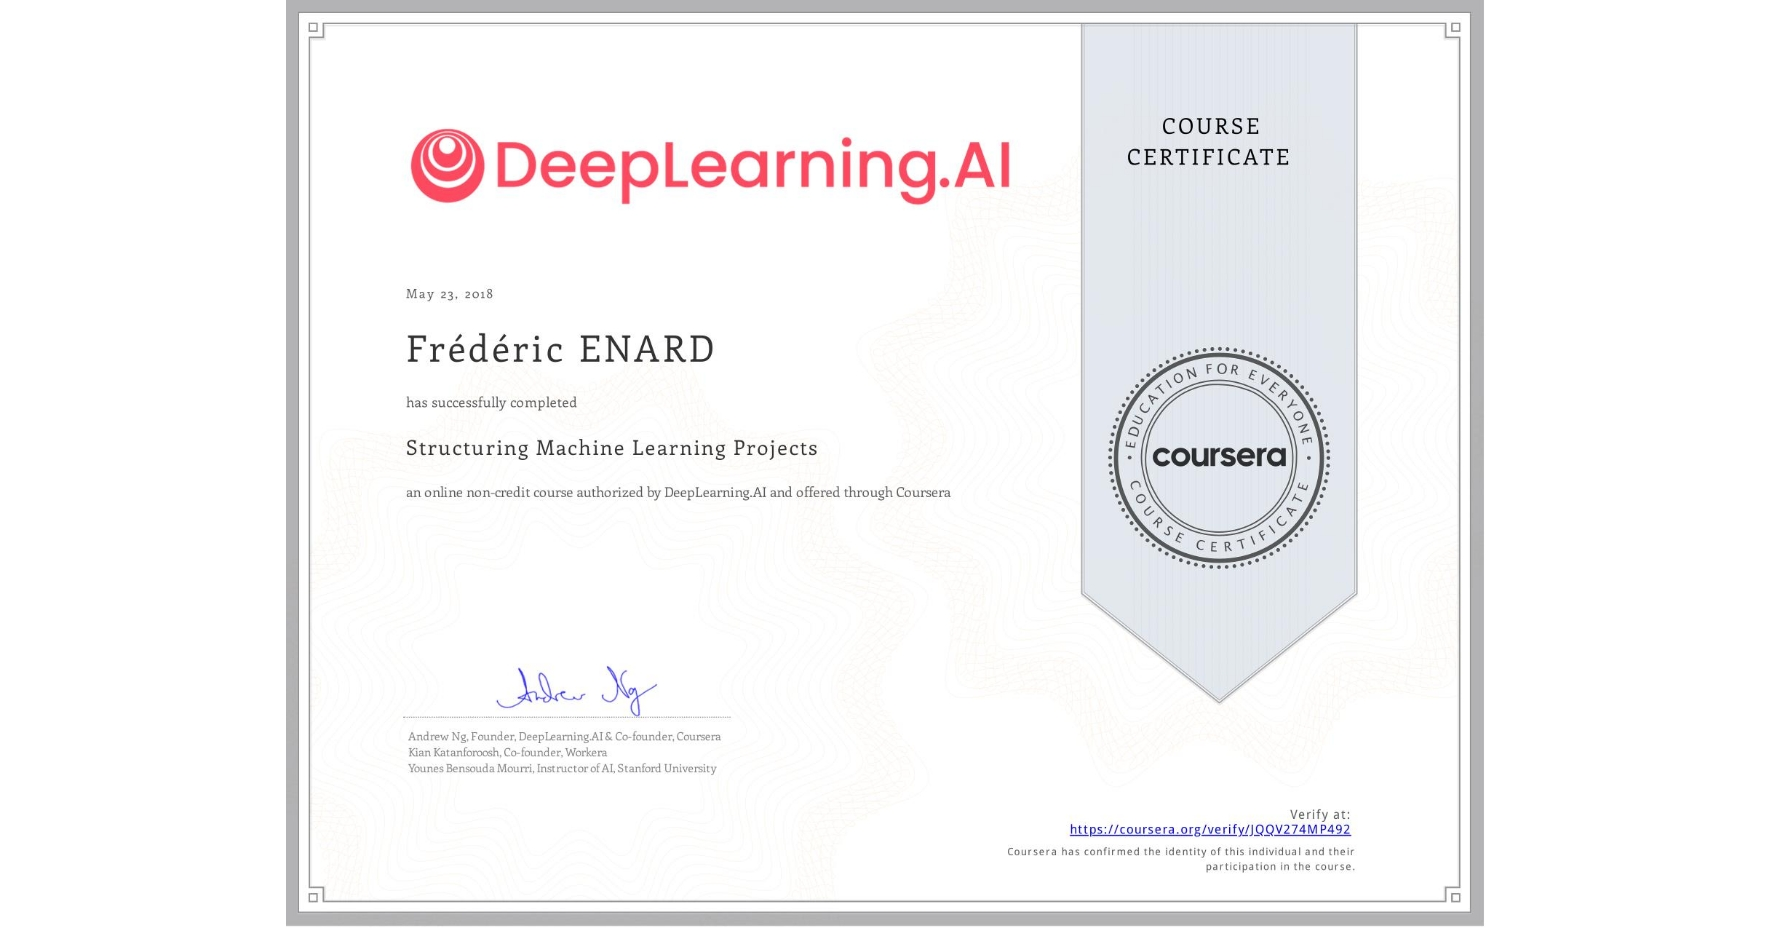 View certificate for Frédéric ENARD, Structuring Machine Learning Projects, an online non-credit course authorized by DeepLearning.AI and offered through Coursera